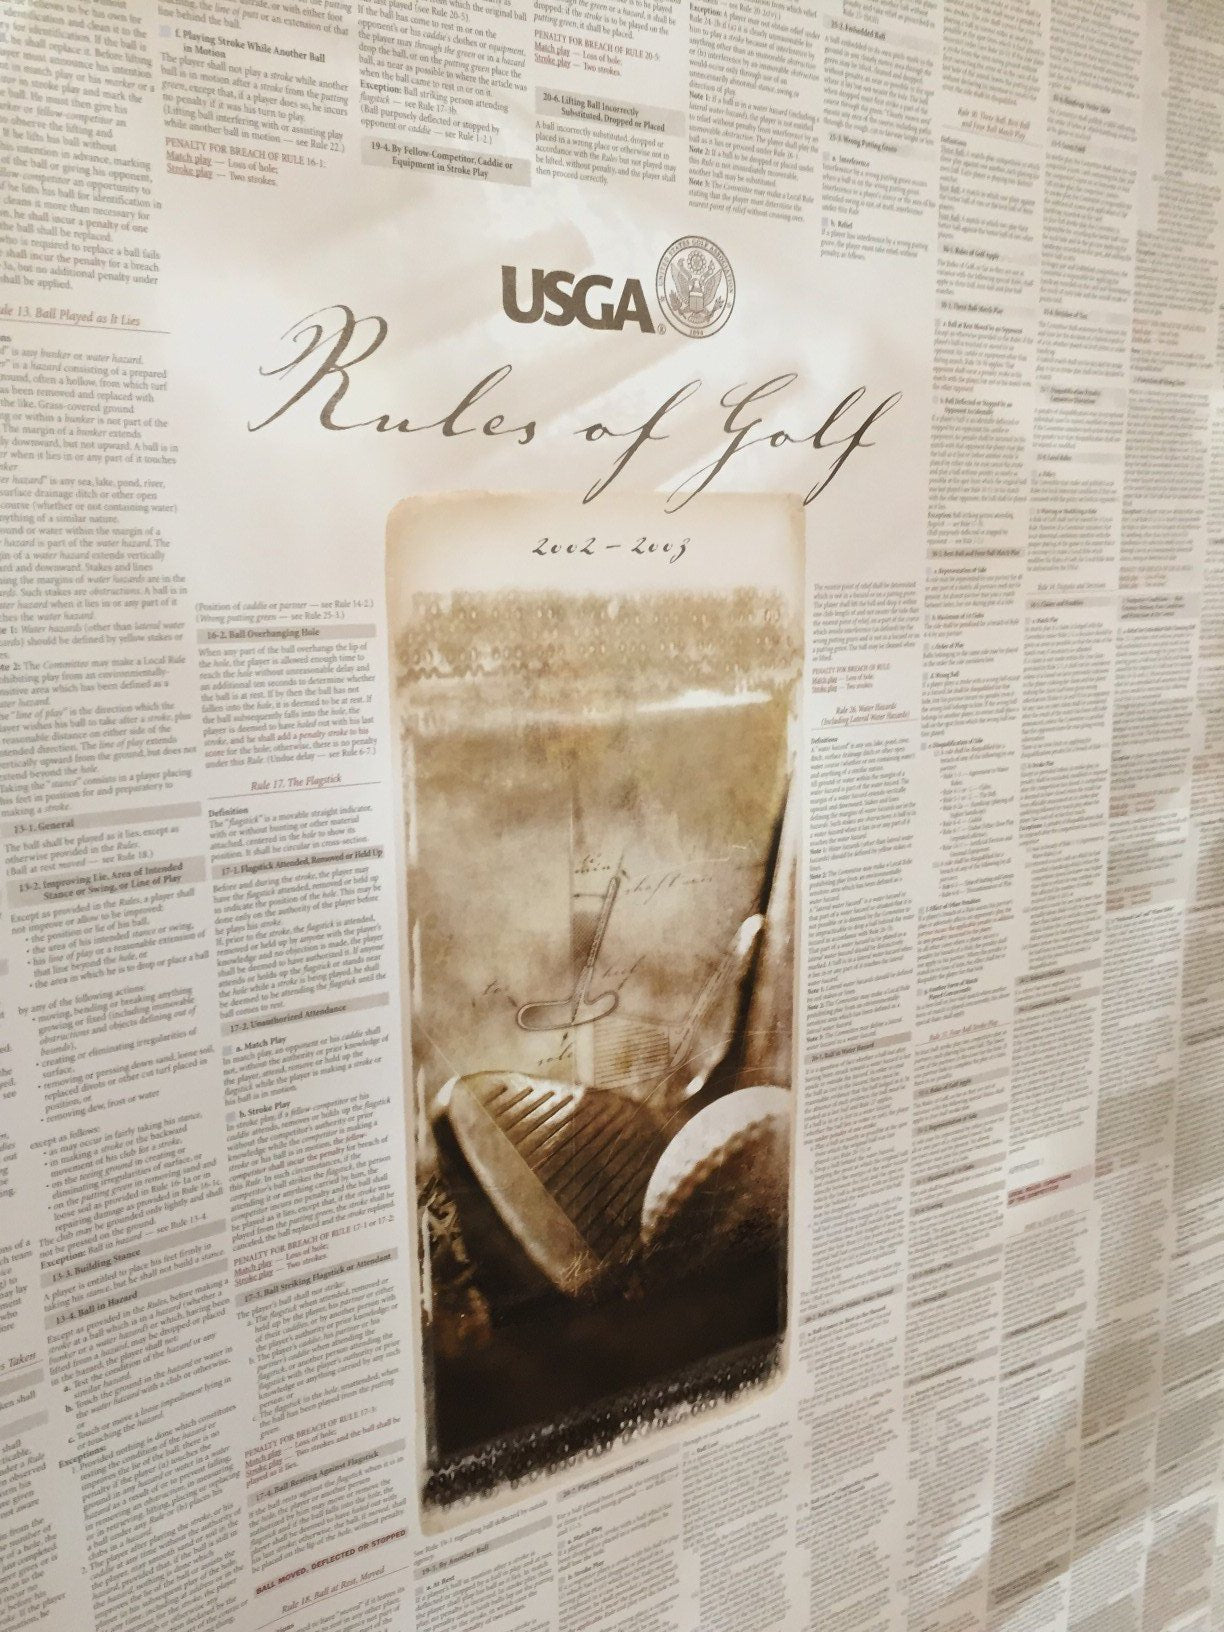 USGA Official Rules of Golf